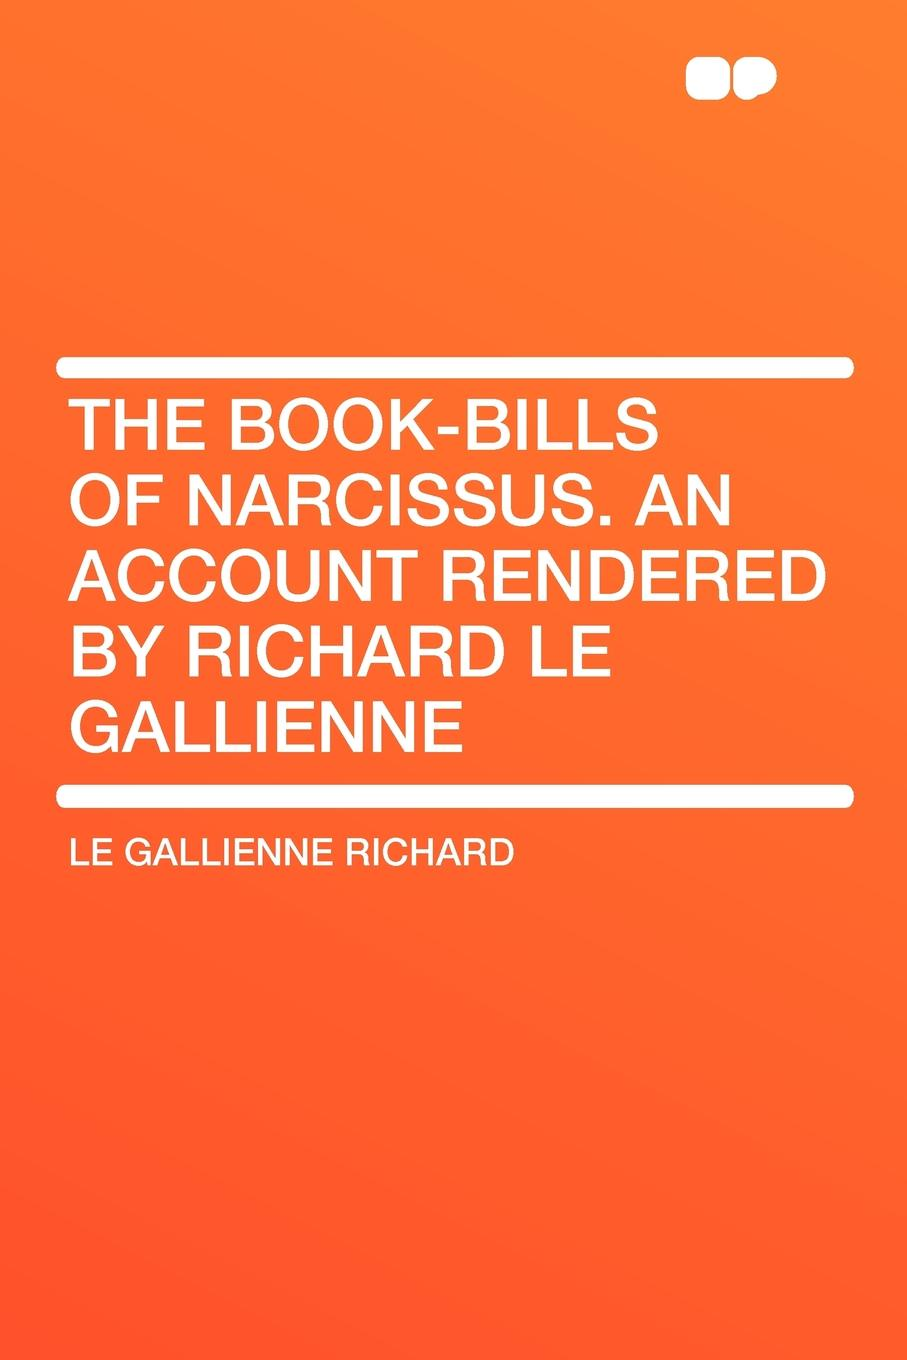 Le Gallienne Richard The Book-Bills of Narcissus. An Account Rendered by